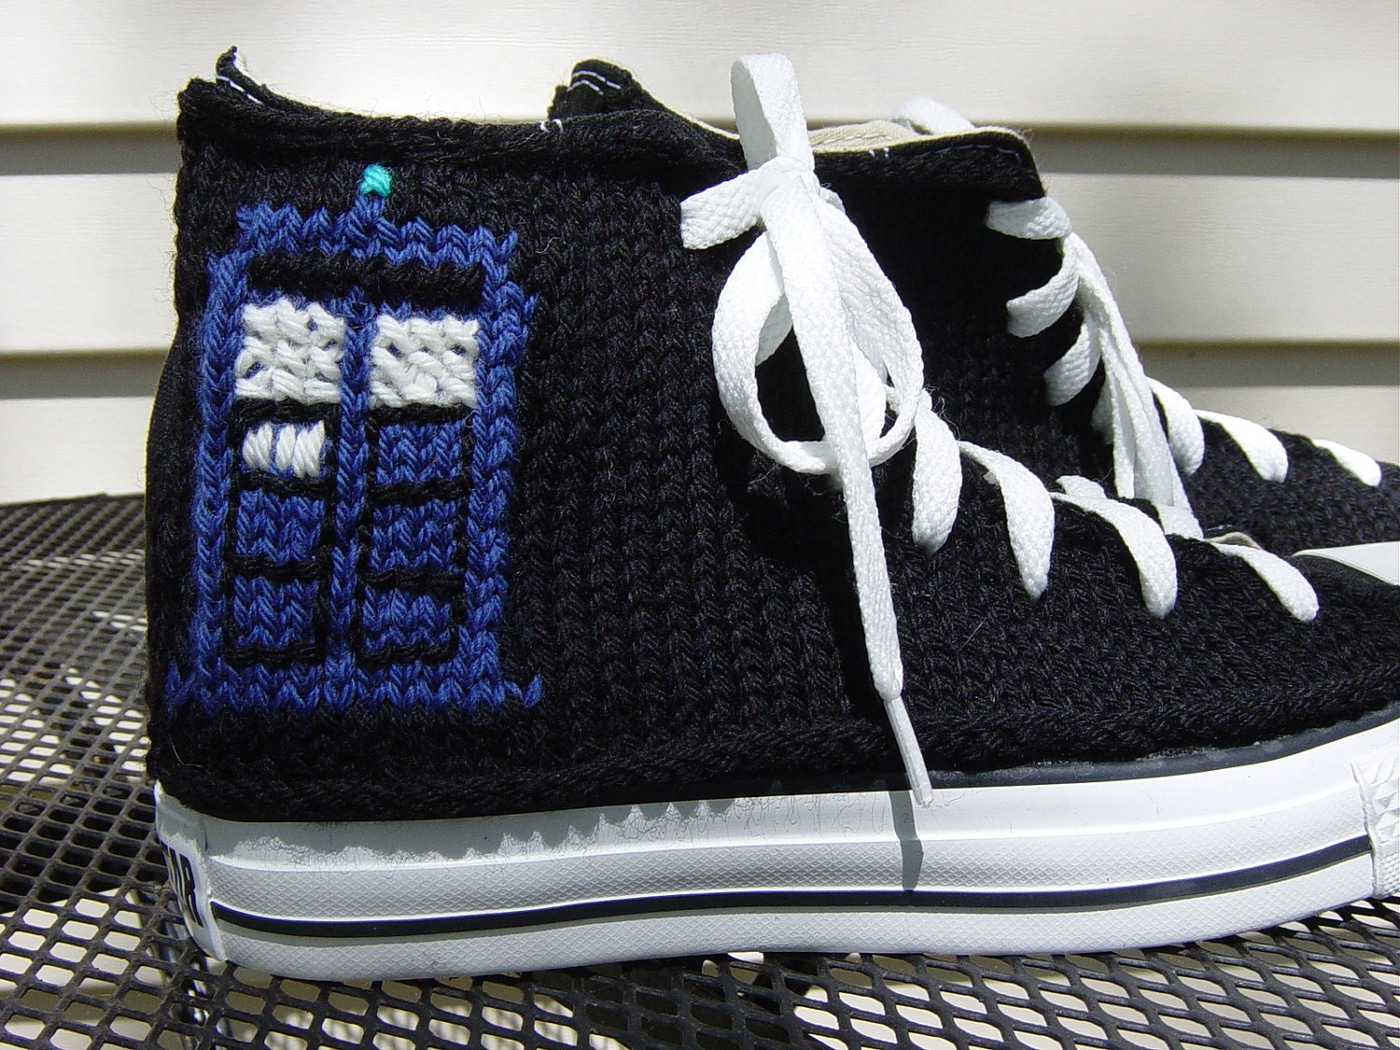 knitted-gamer-converse-sneaker-designs